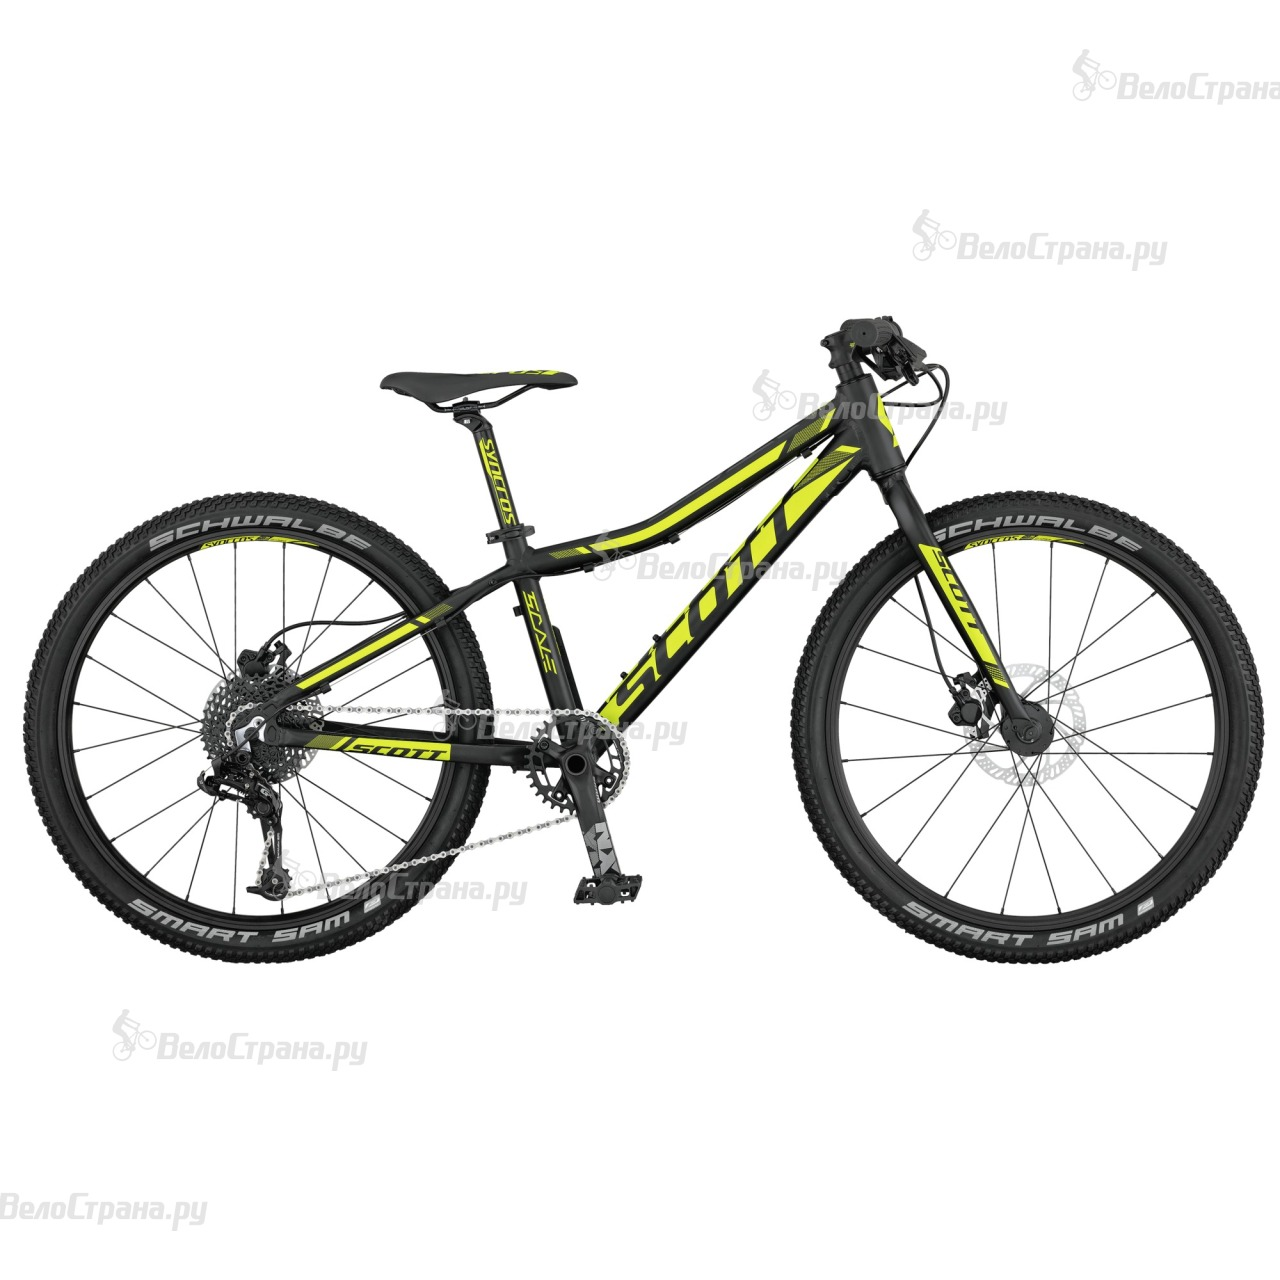 Велосипед Scott Scale RC JR 24 disc (2017) велосипед scott voltage junior 24 disc 24 2016